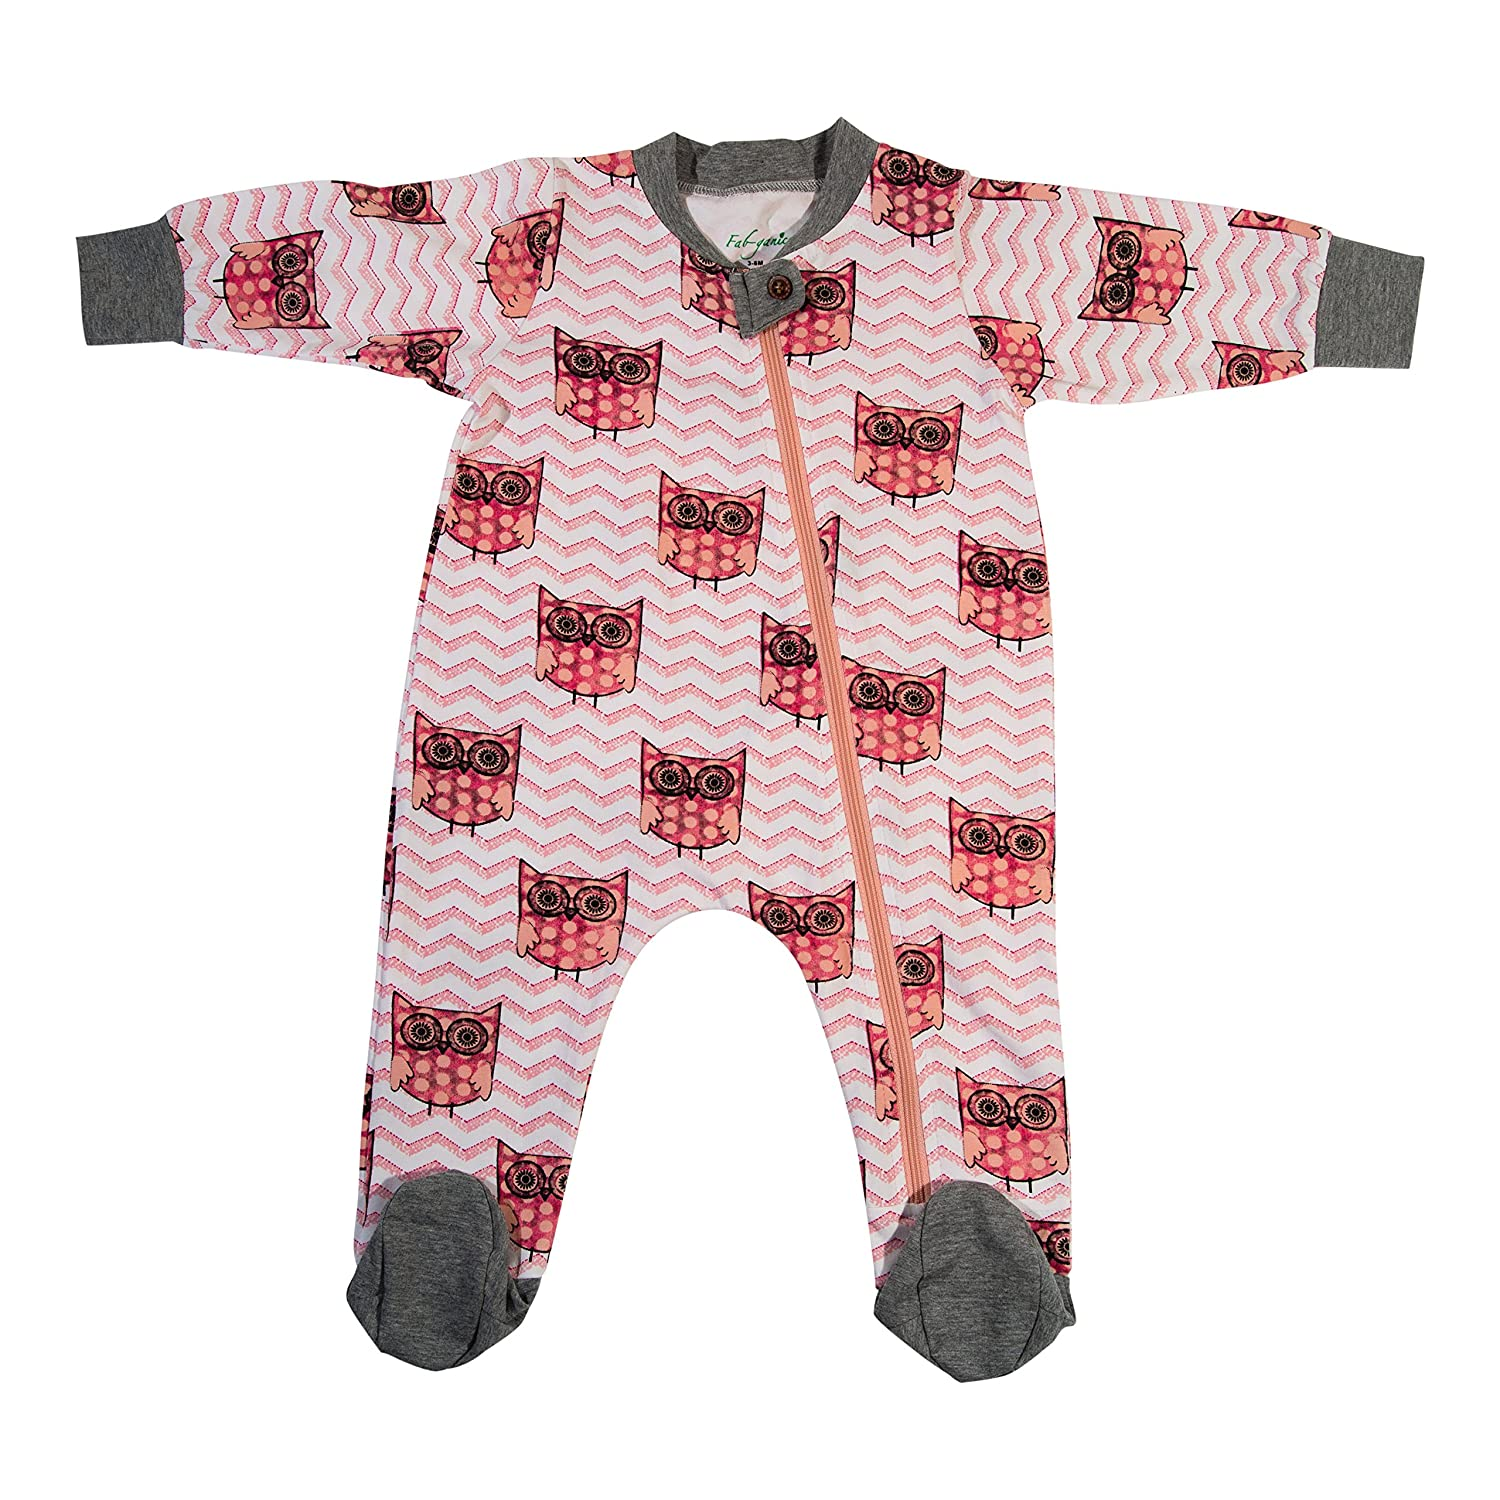 Fab-ganics Organic Cotton Baby Girls Romper Pajama Sleeper-full zipper/footie